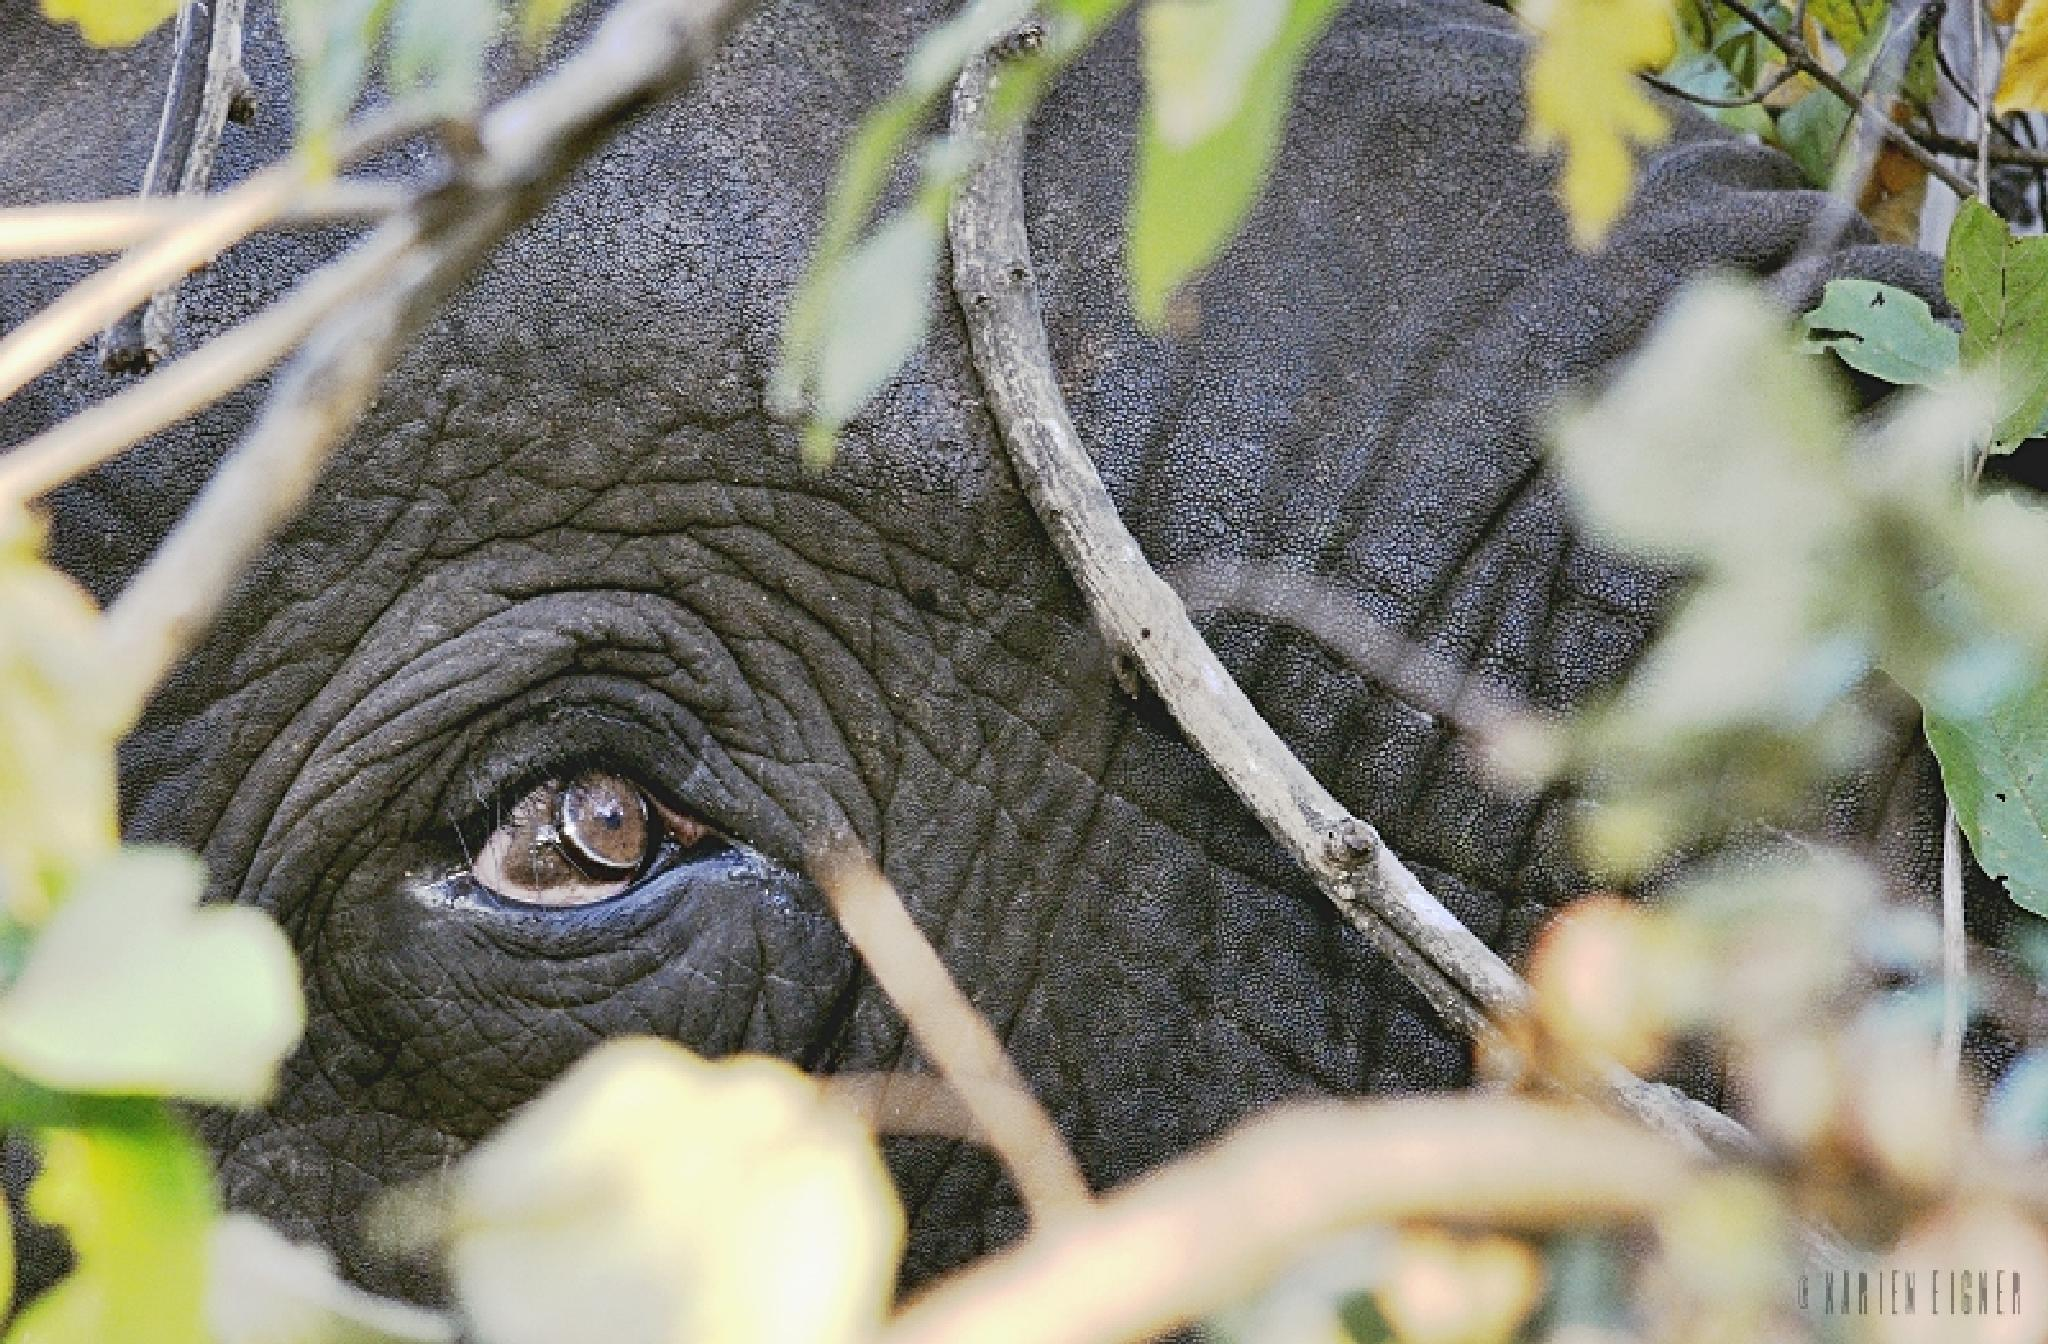 The intelligent eye of an elephant by Karien Eigner